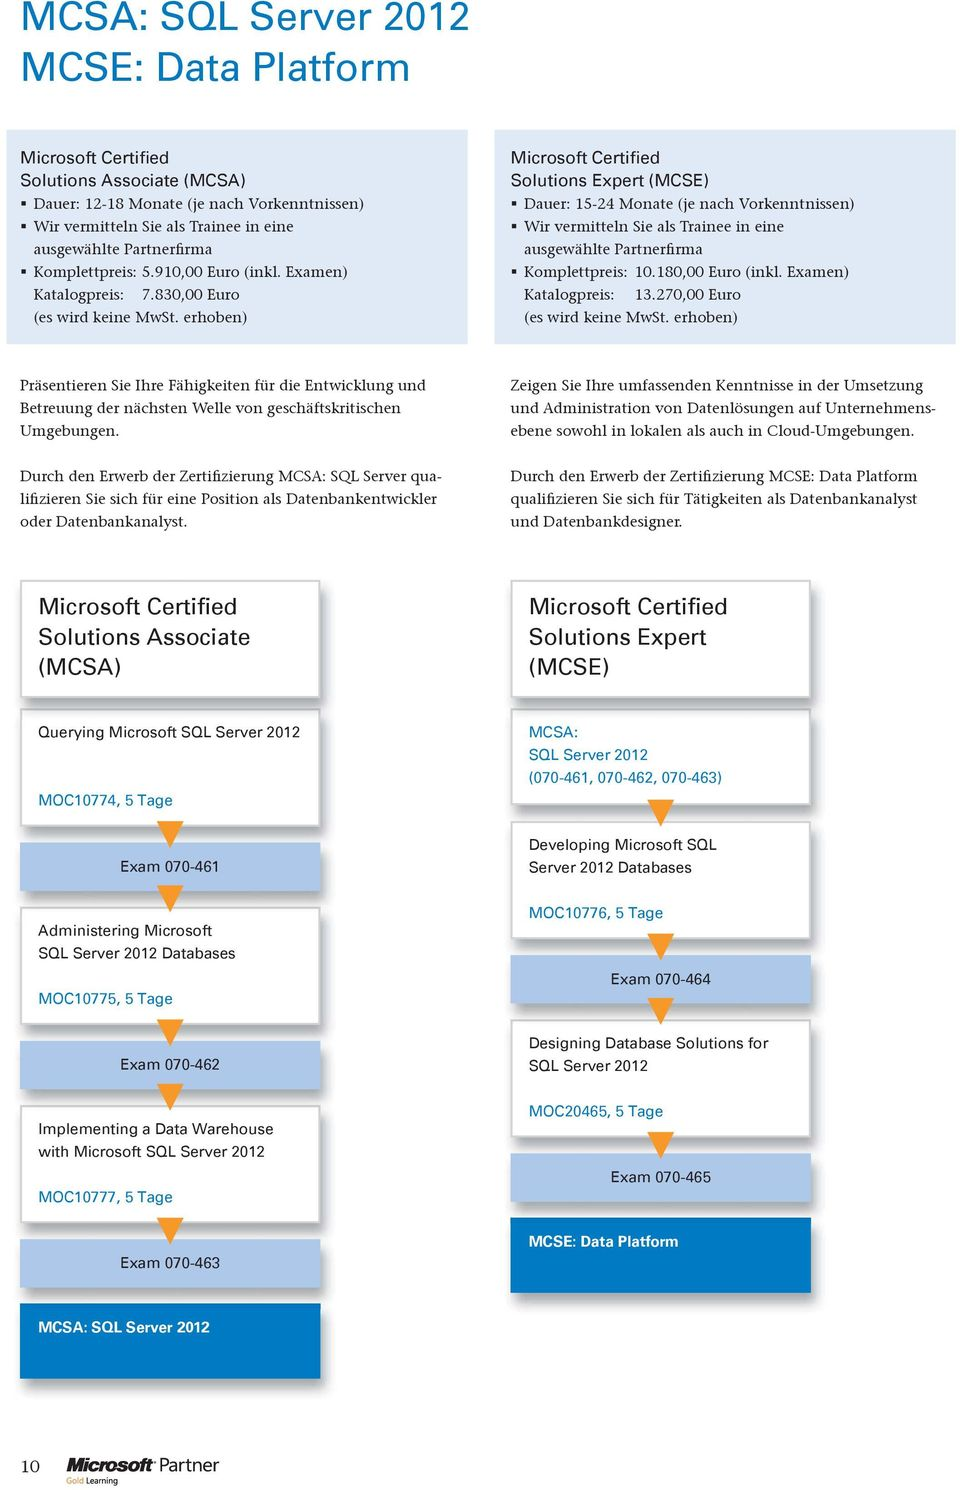 Administering Microsoft SQL Server 2012 Databases MOC10775, 5 Tage MOC10776, 5 Tage Exam 070-464 Exam 070-462 Designing Database Solutions for SQL Server